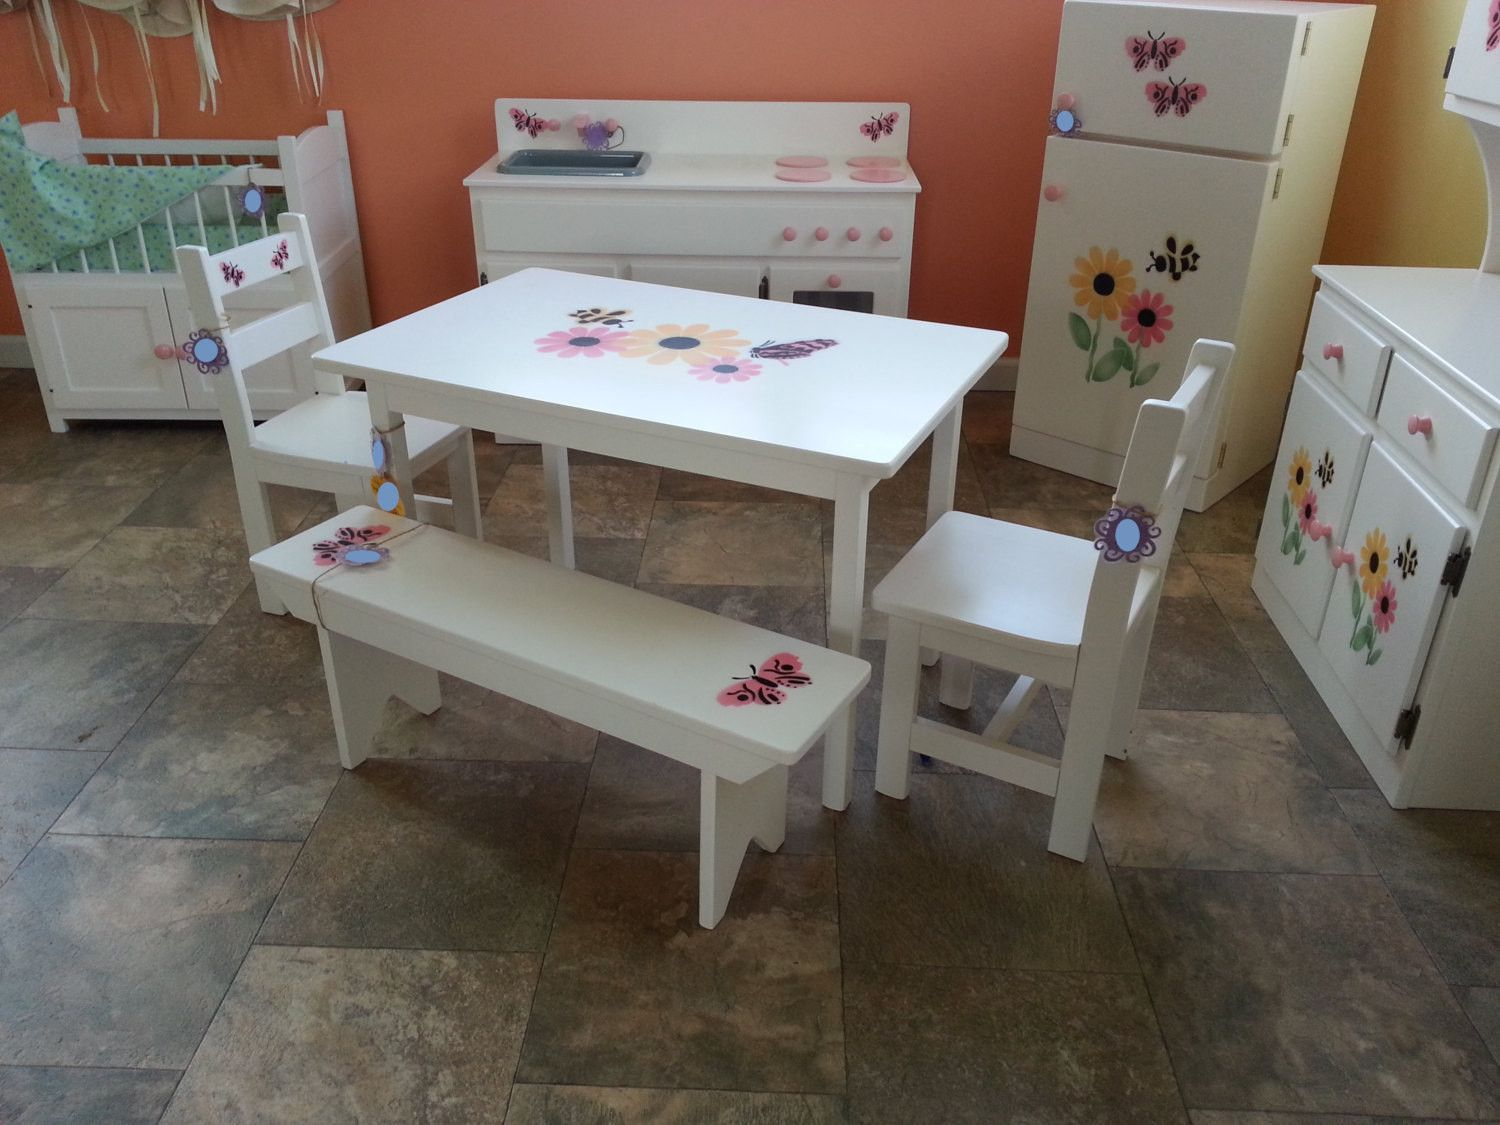 Wooden Toddler Table Chair Bench Set Pretend Play Furniture Montessori  American Folk Toy Gift Prop 286